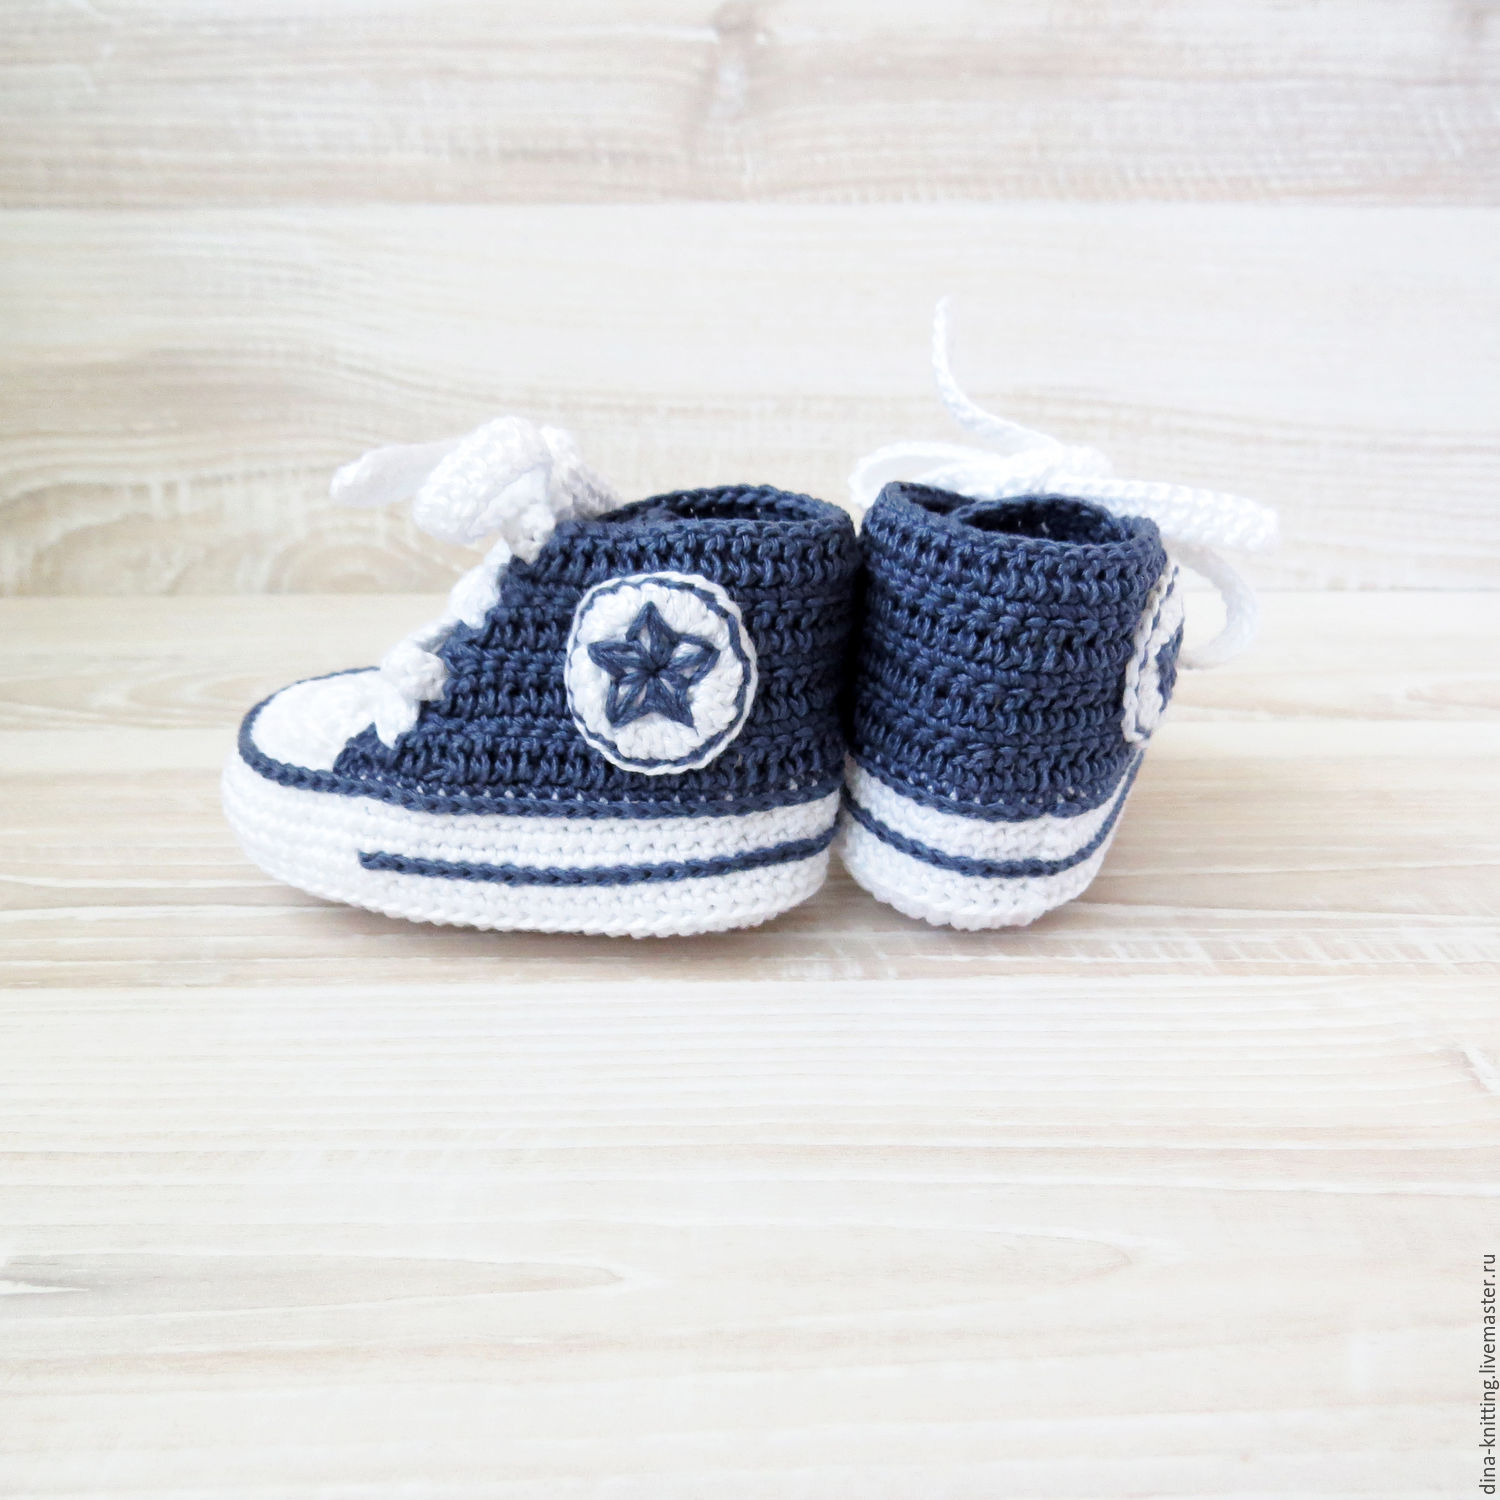 booties shoes knitted shoes booties for baby boy blue – shop online